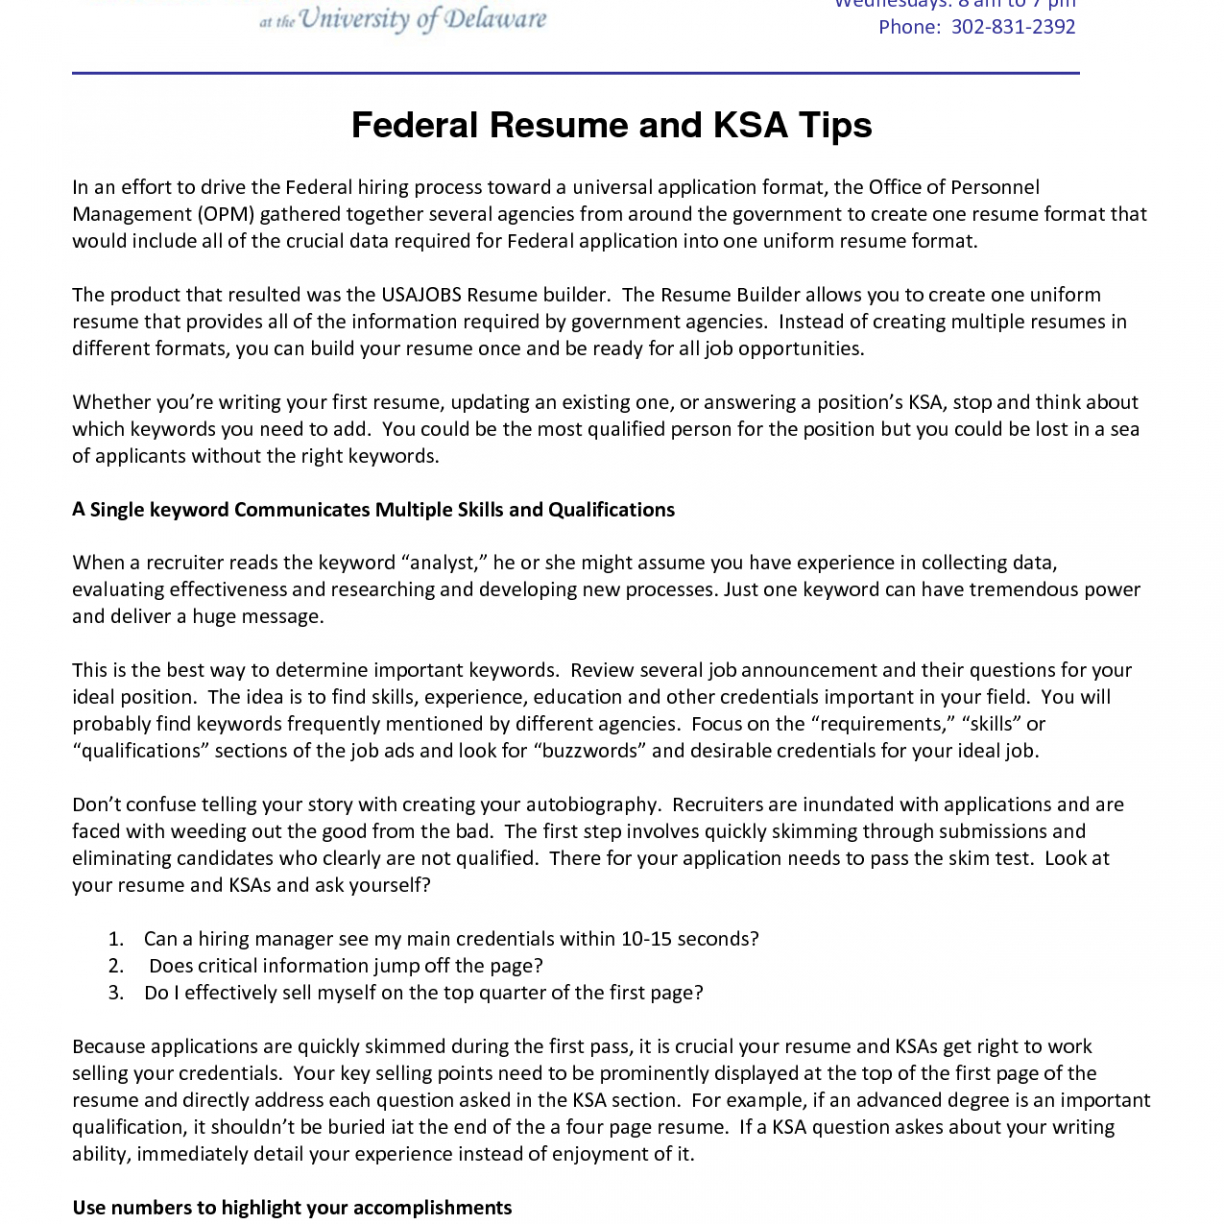 Federal Cover Letter Template - Usajobs Resume Builder Fabulous Federal Samples for Your Usa Jobs